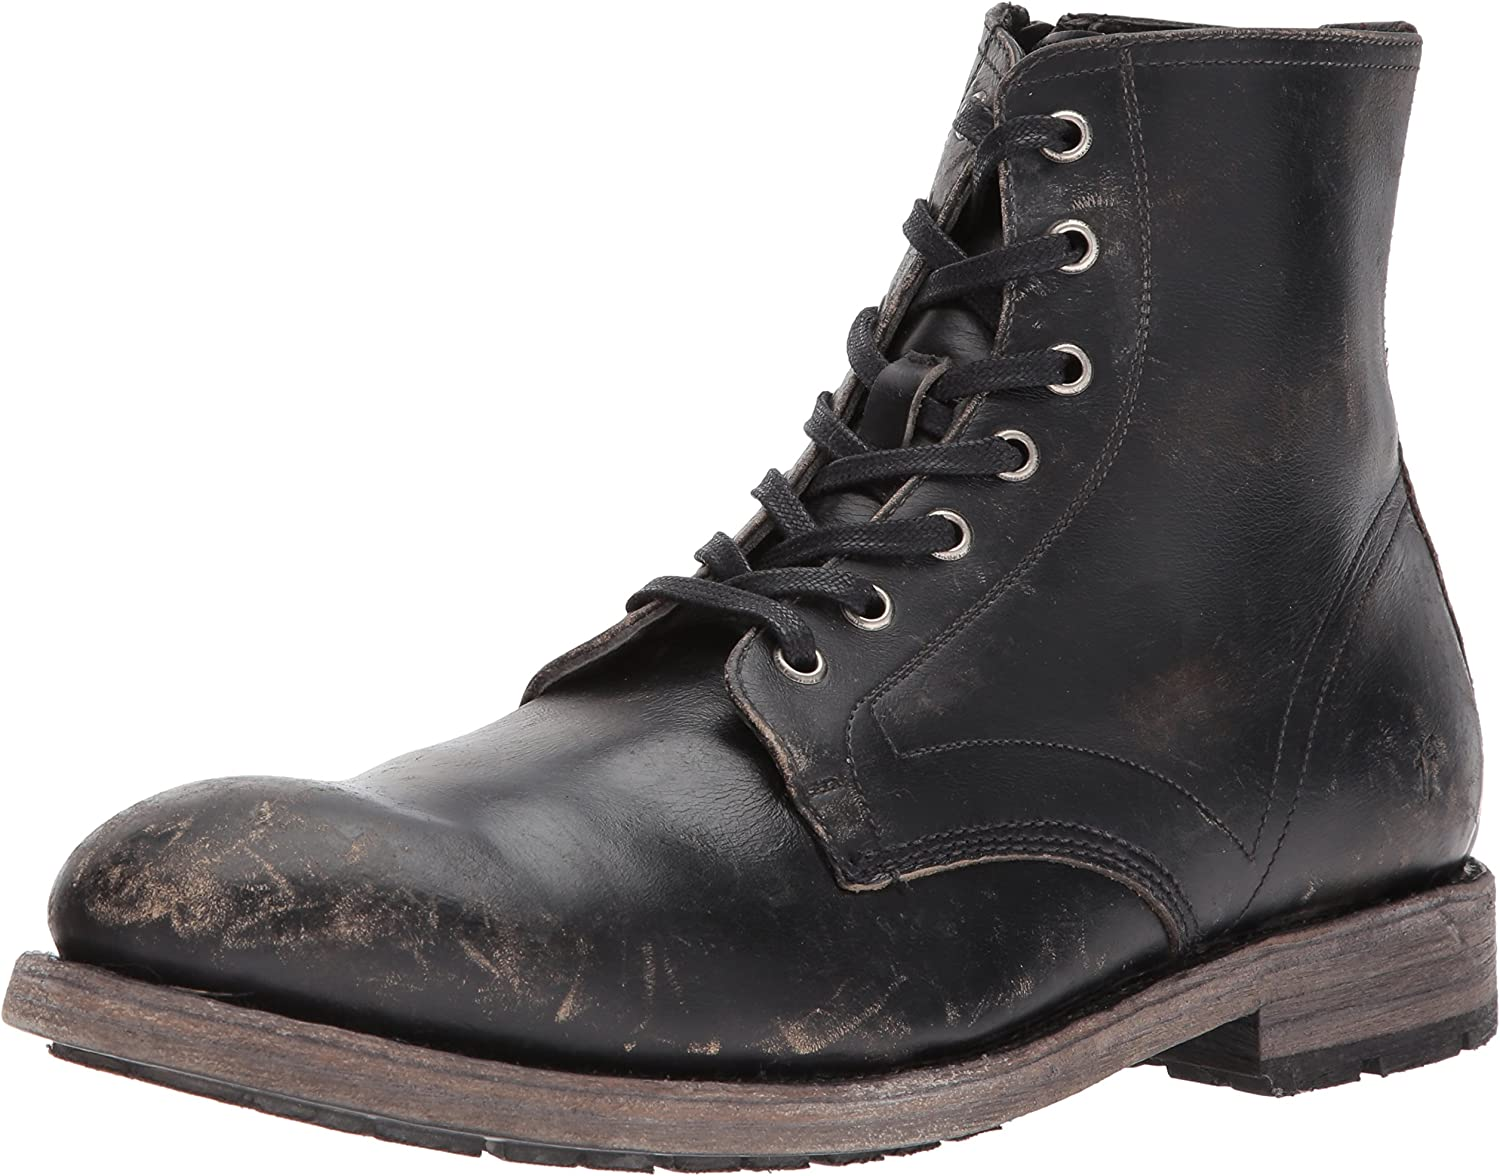 Bowery Lace Up Combat Boot, Black